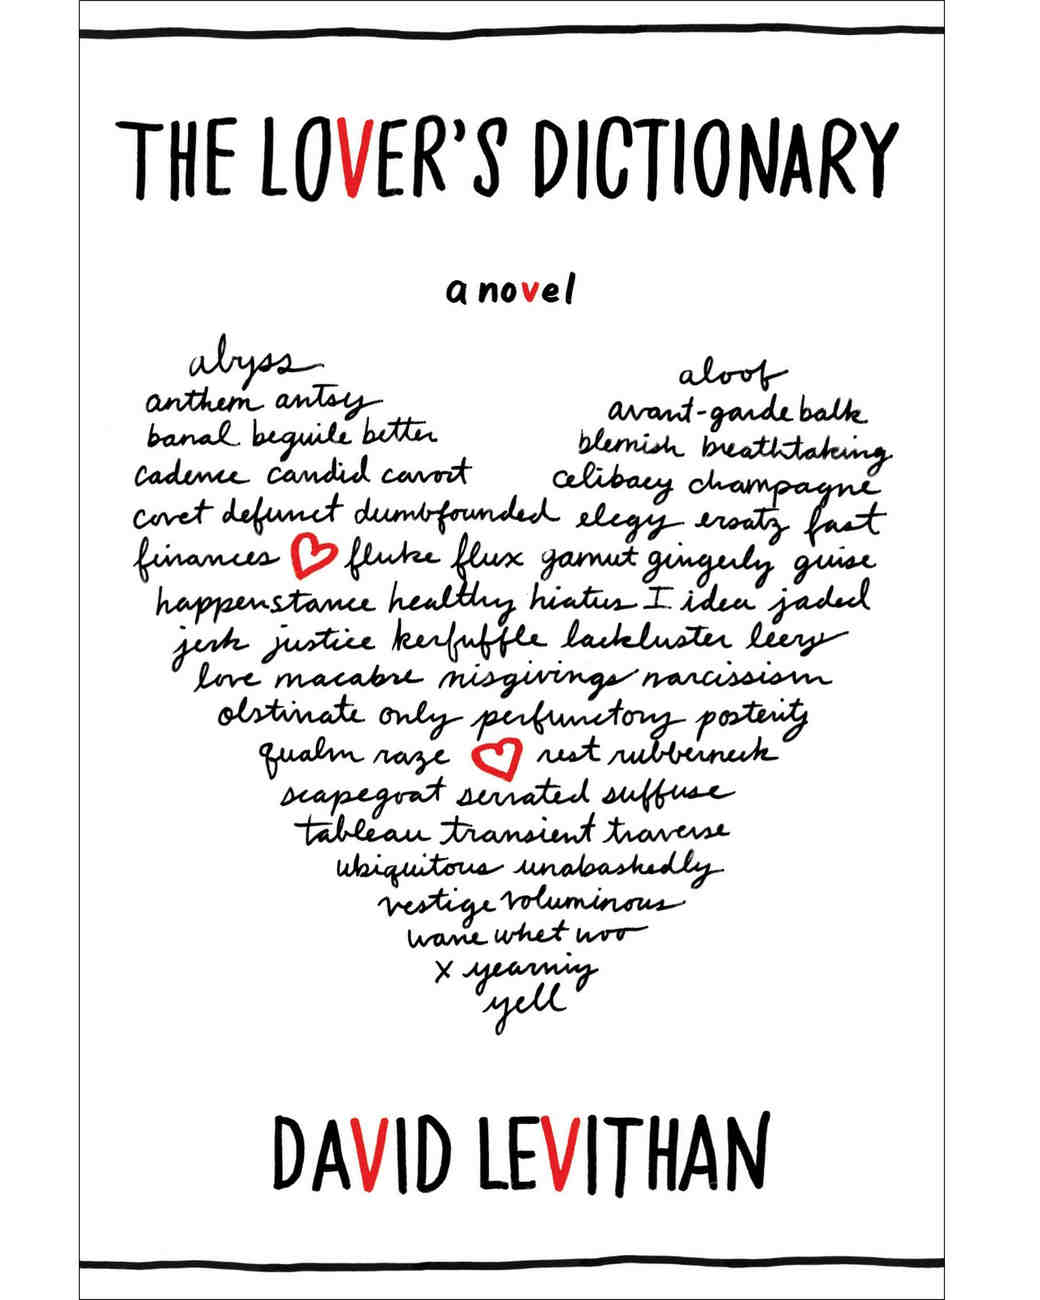 books-read-before-marriage-lovers-dictionary-levithan-0115.jpg